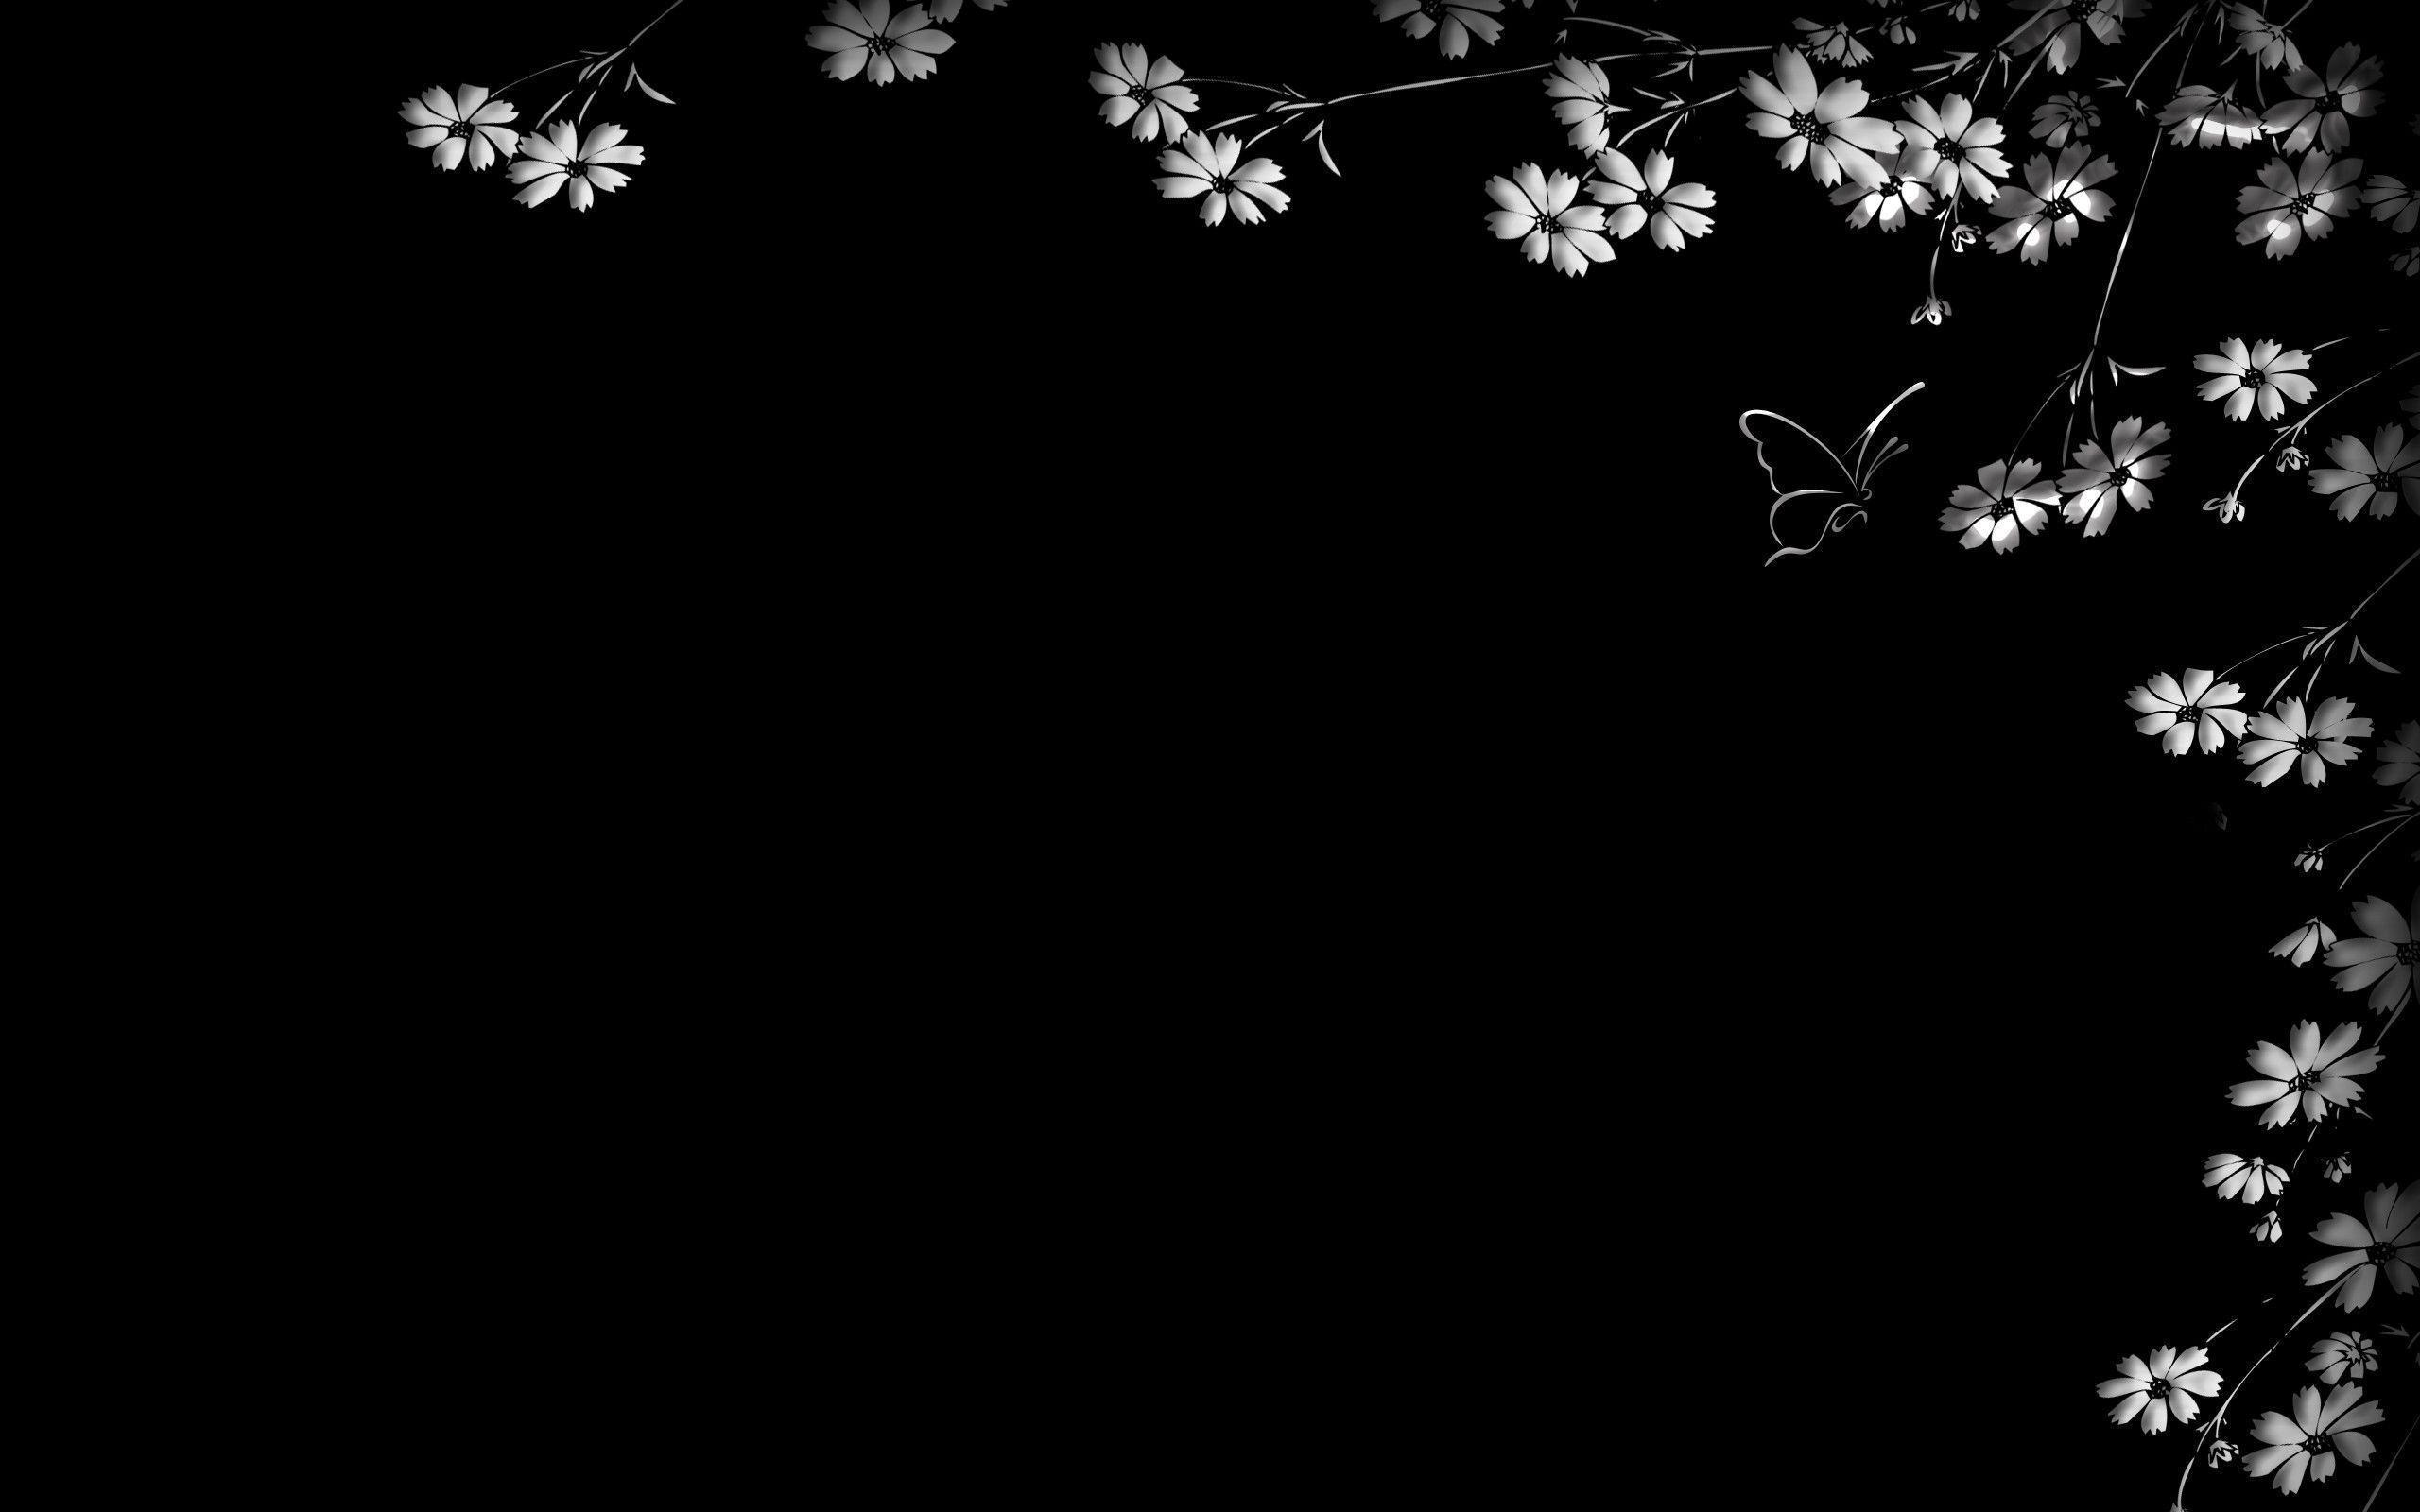 Why Use Black Background Wallpaper?